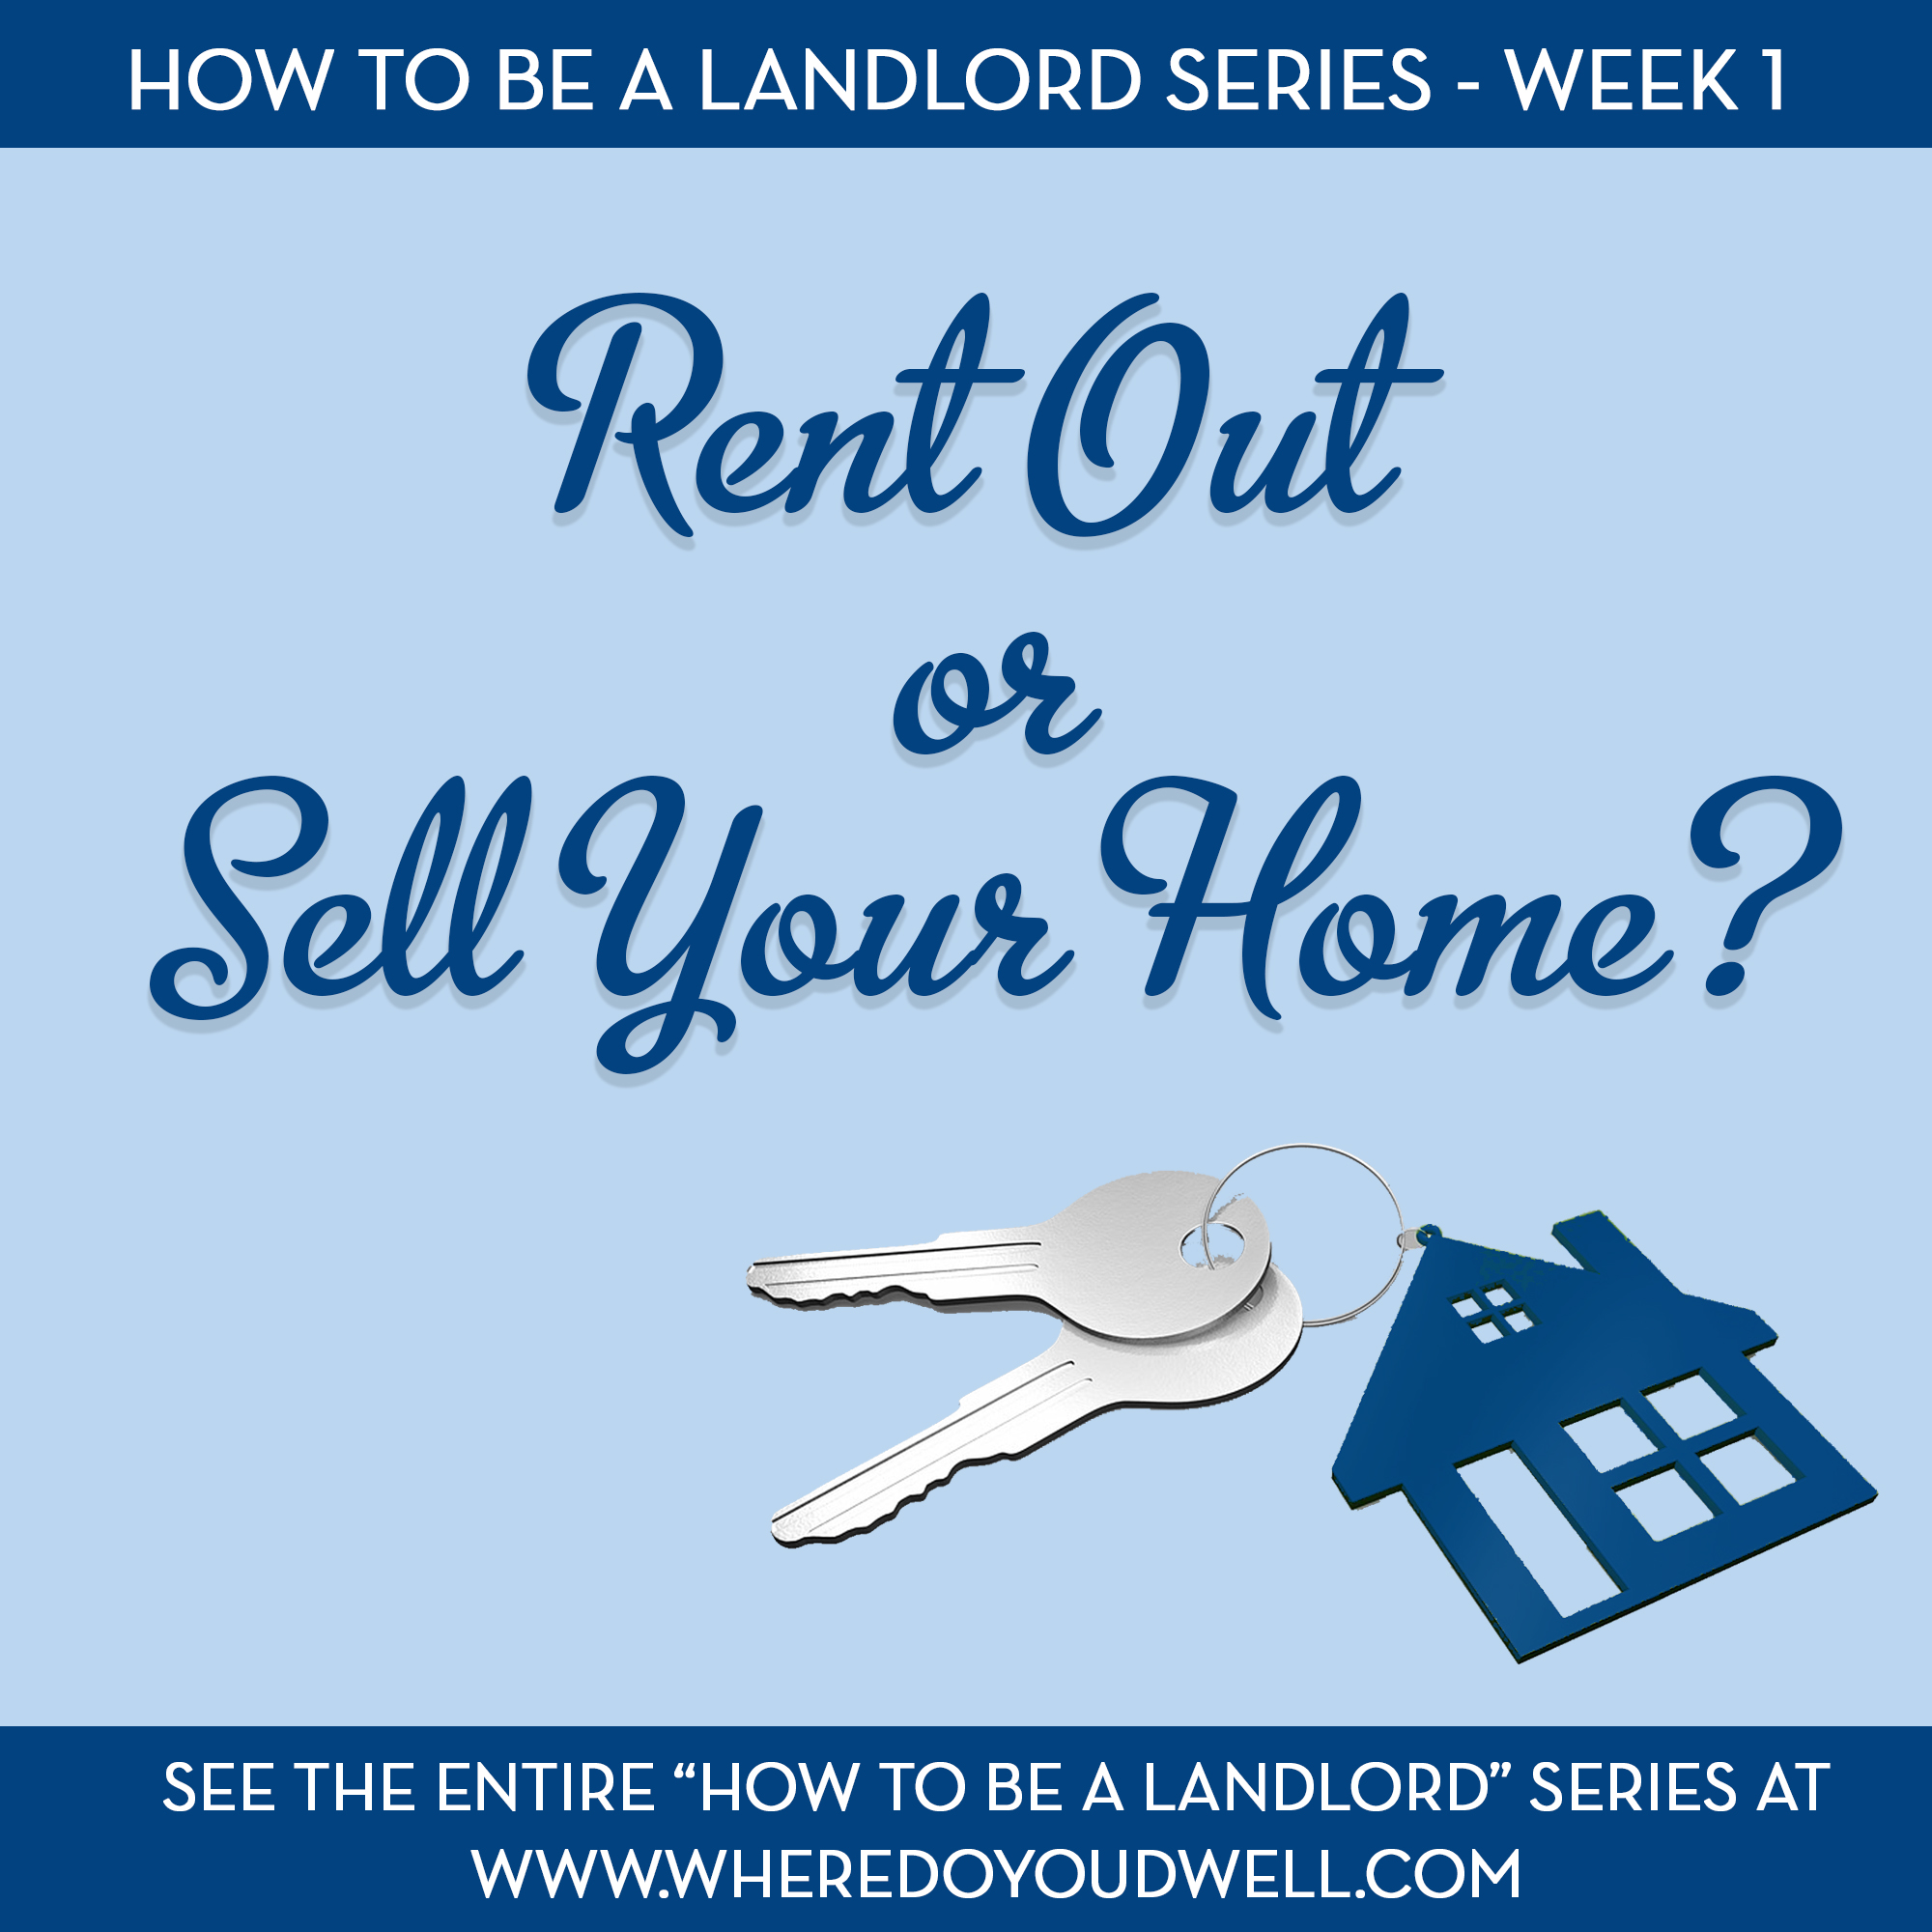 Rent Out or Sell Your Home?